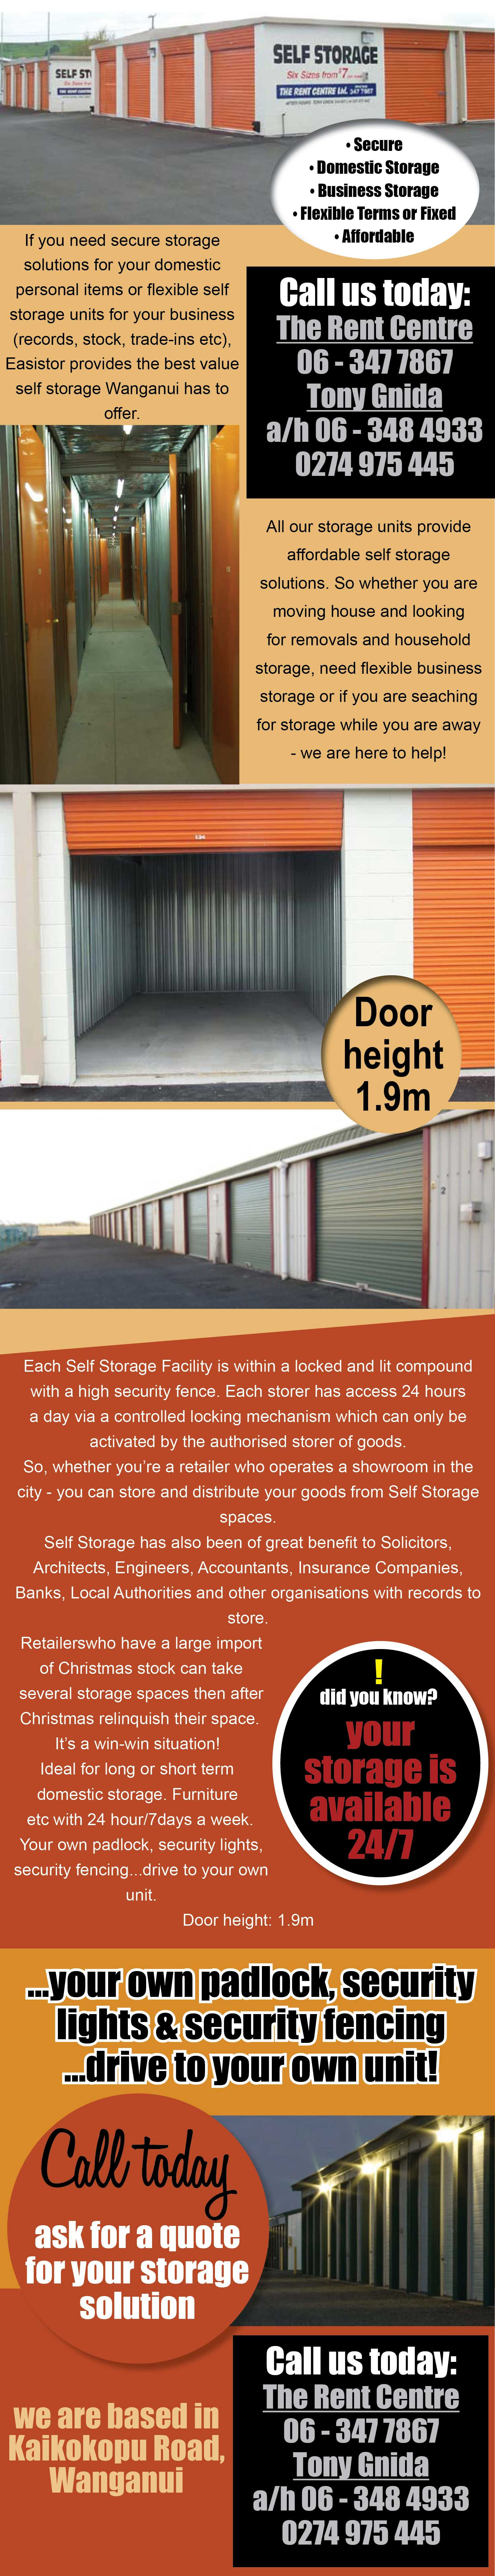 Searching for secure, flexible and affordable storage solutions?